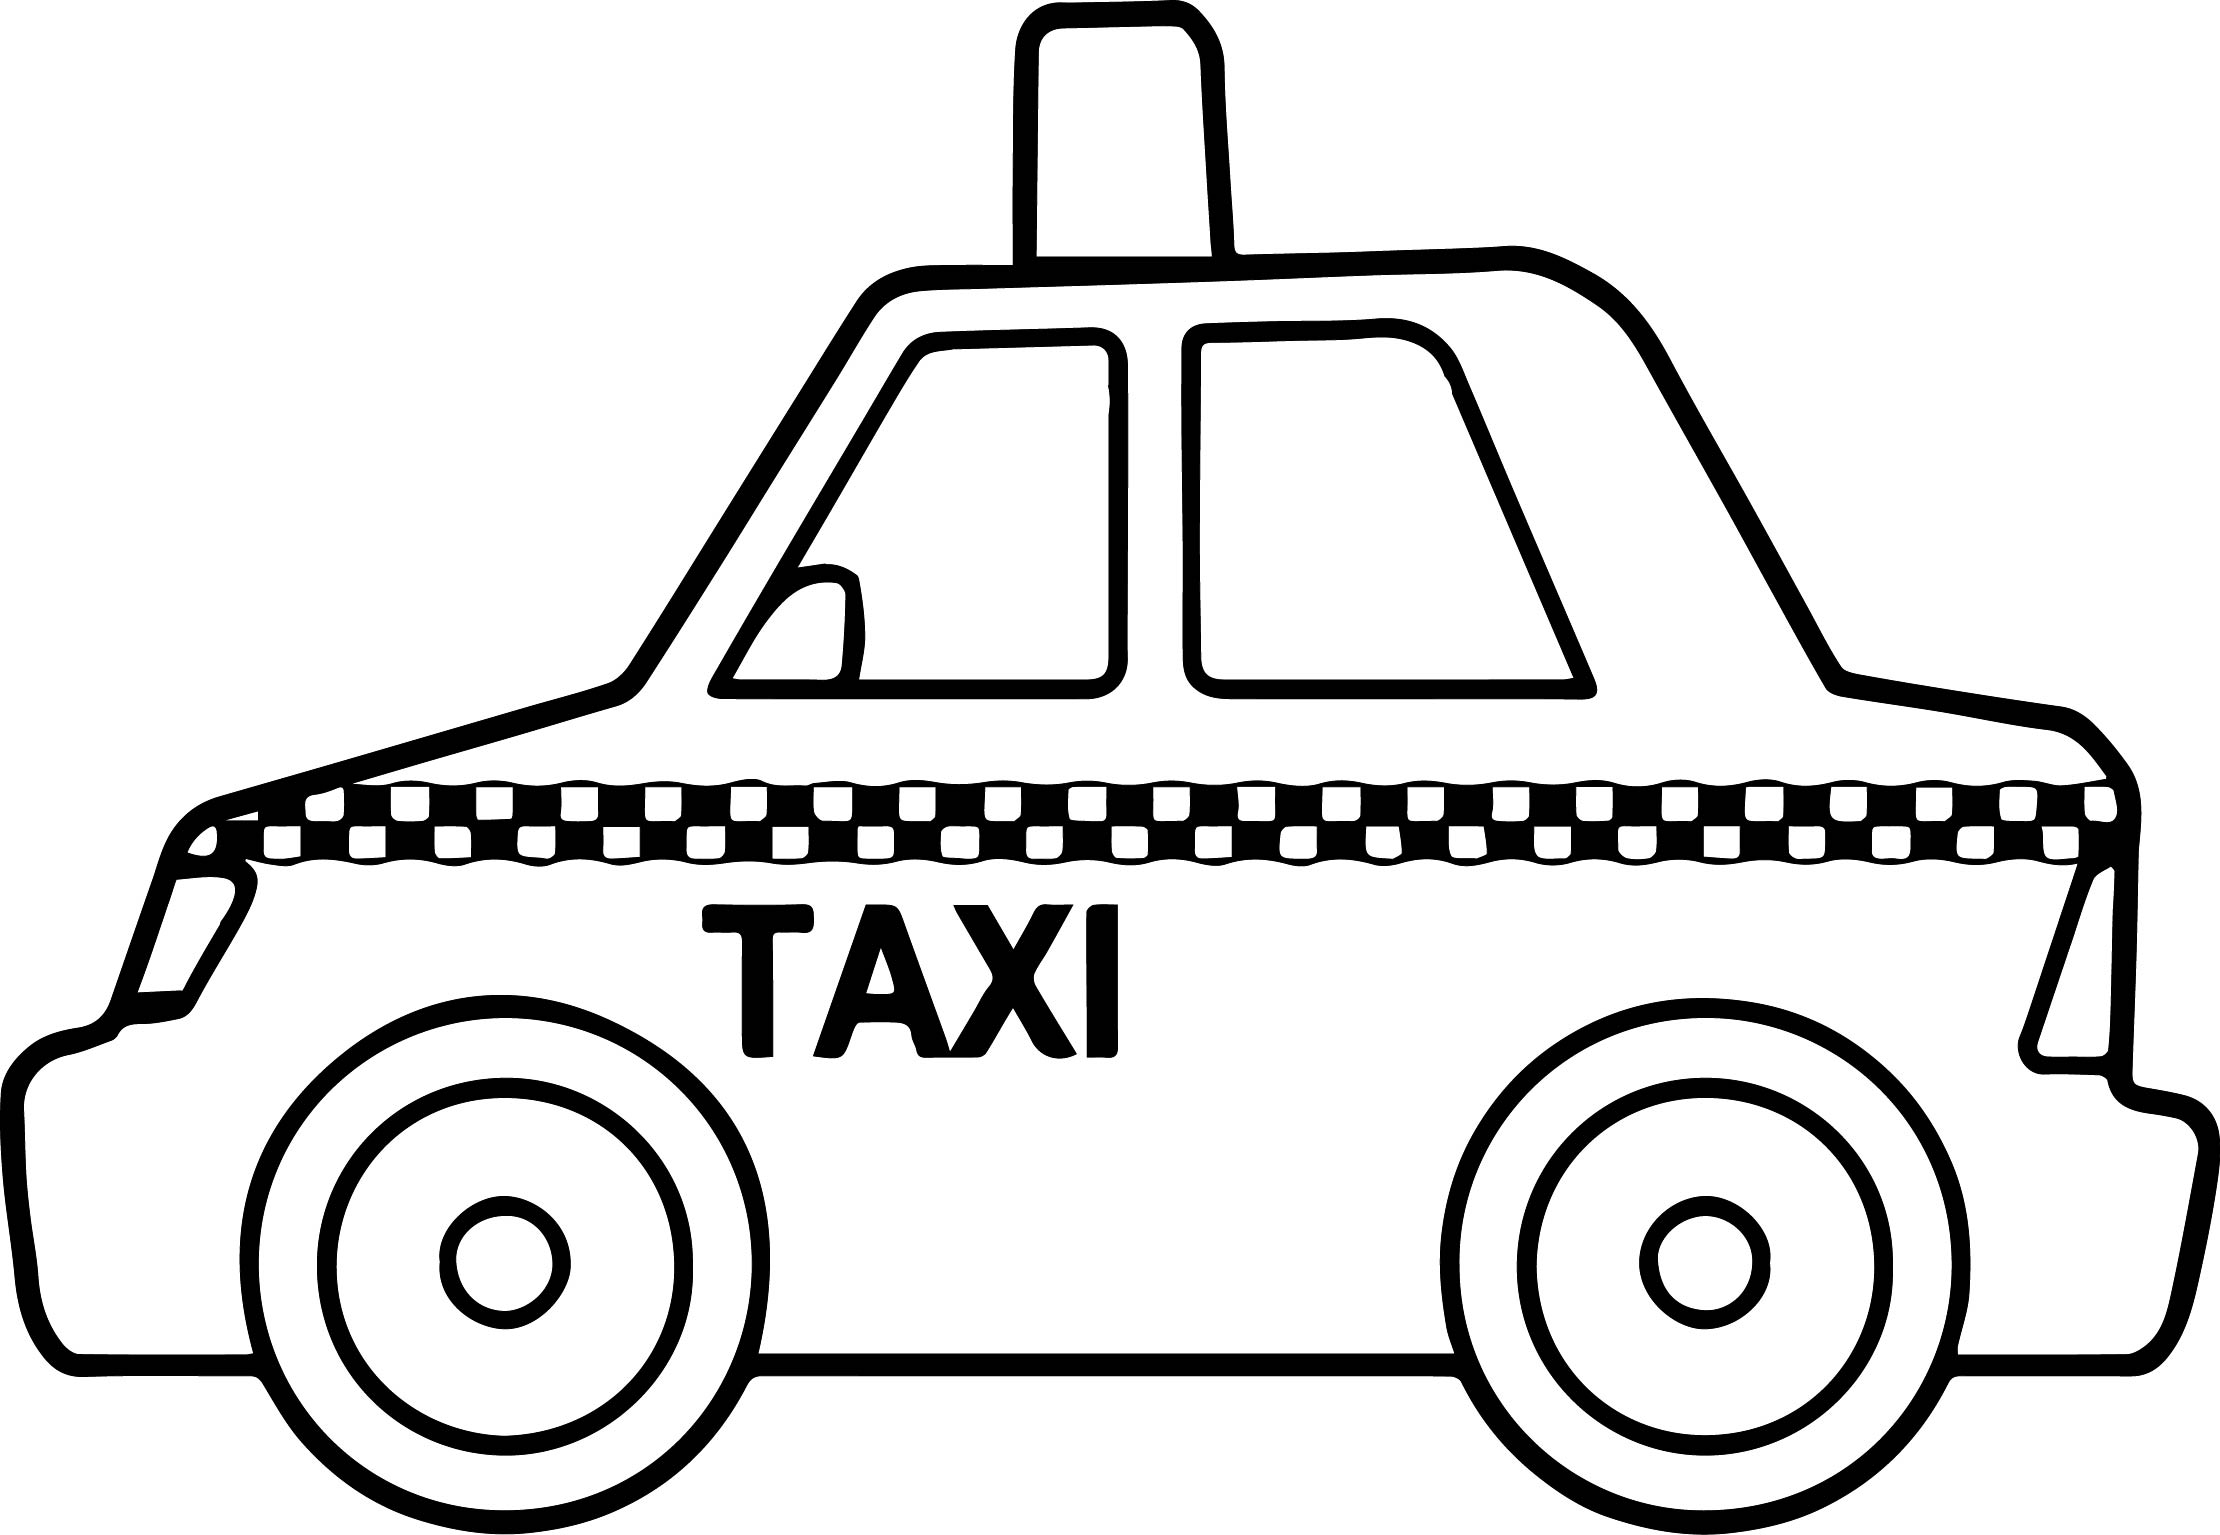 basic taxi toy car coloring page wecoloringpage